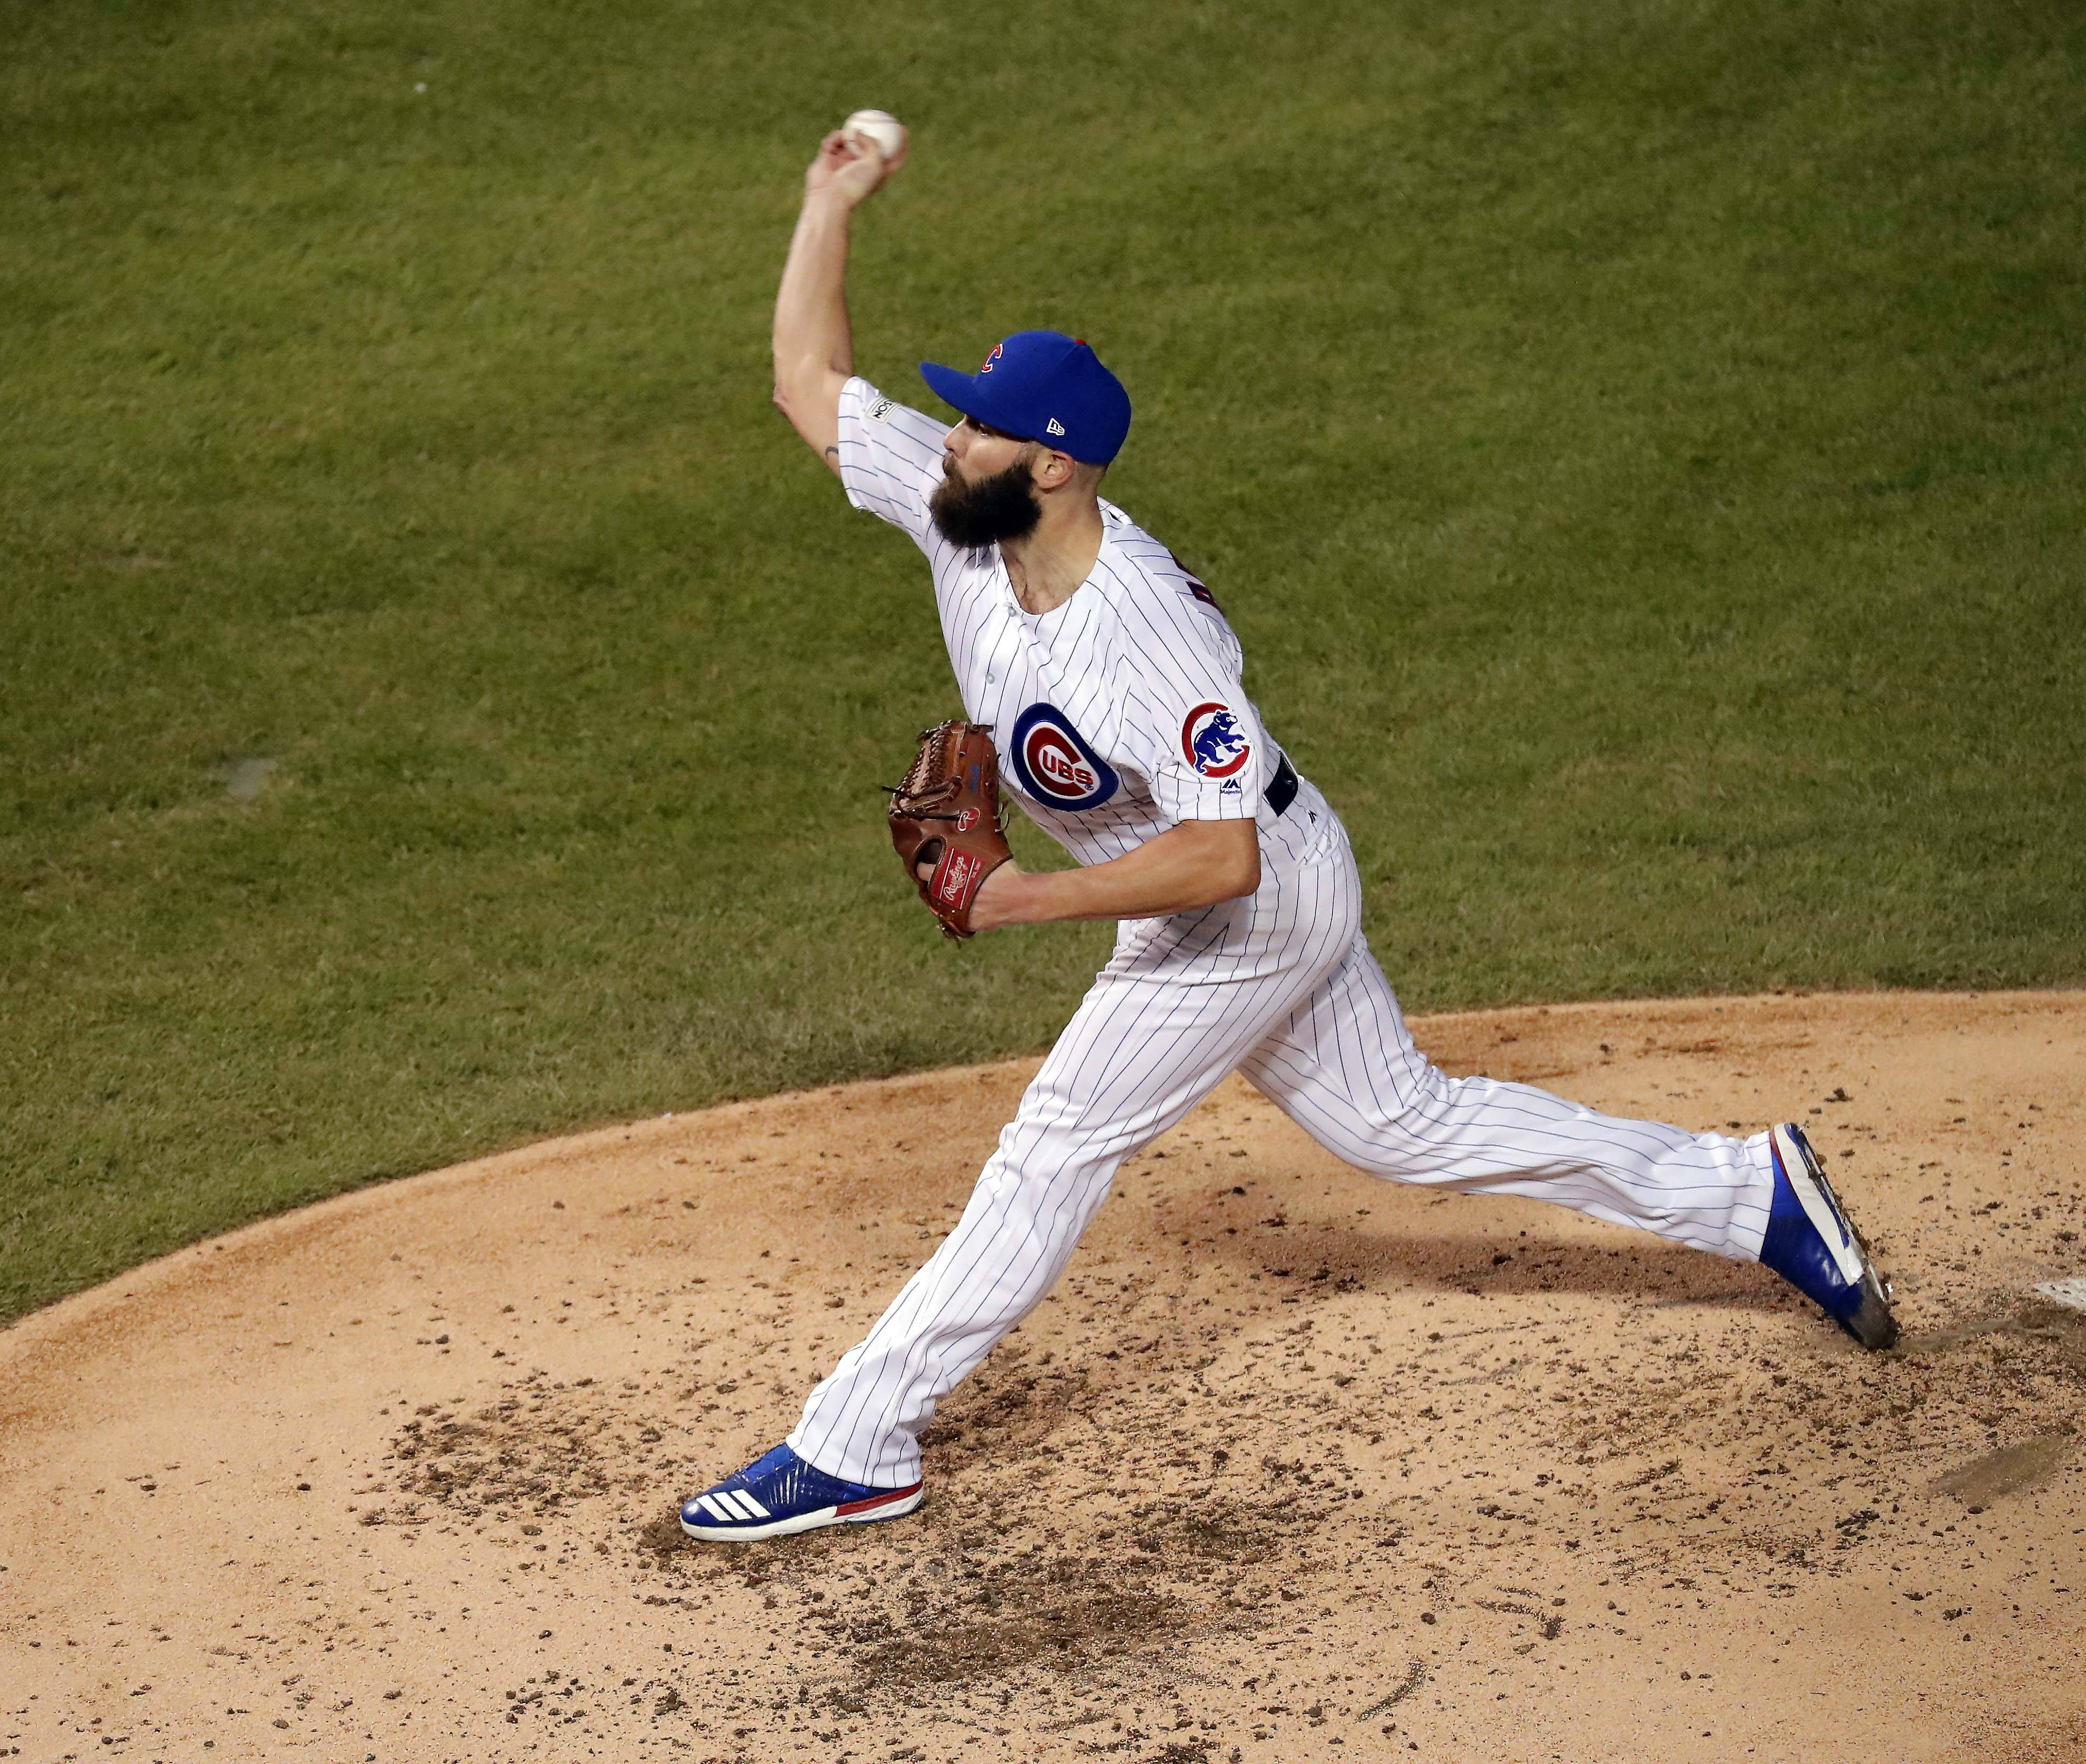 Cubs starting pitcher Jake Arrieta throws in the fourth inning during Game 4 of the National League Championship Series. That was likely Arrieta's swan song as a Cub as Cubs management will shake Arrieta's hand, thank him for everything and wish him well in the offseason.